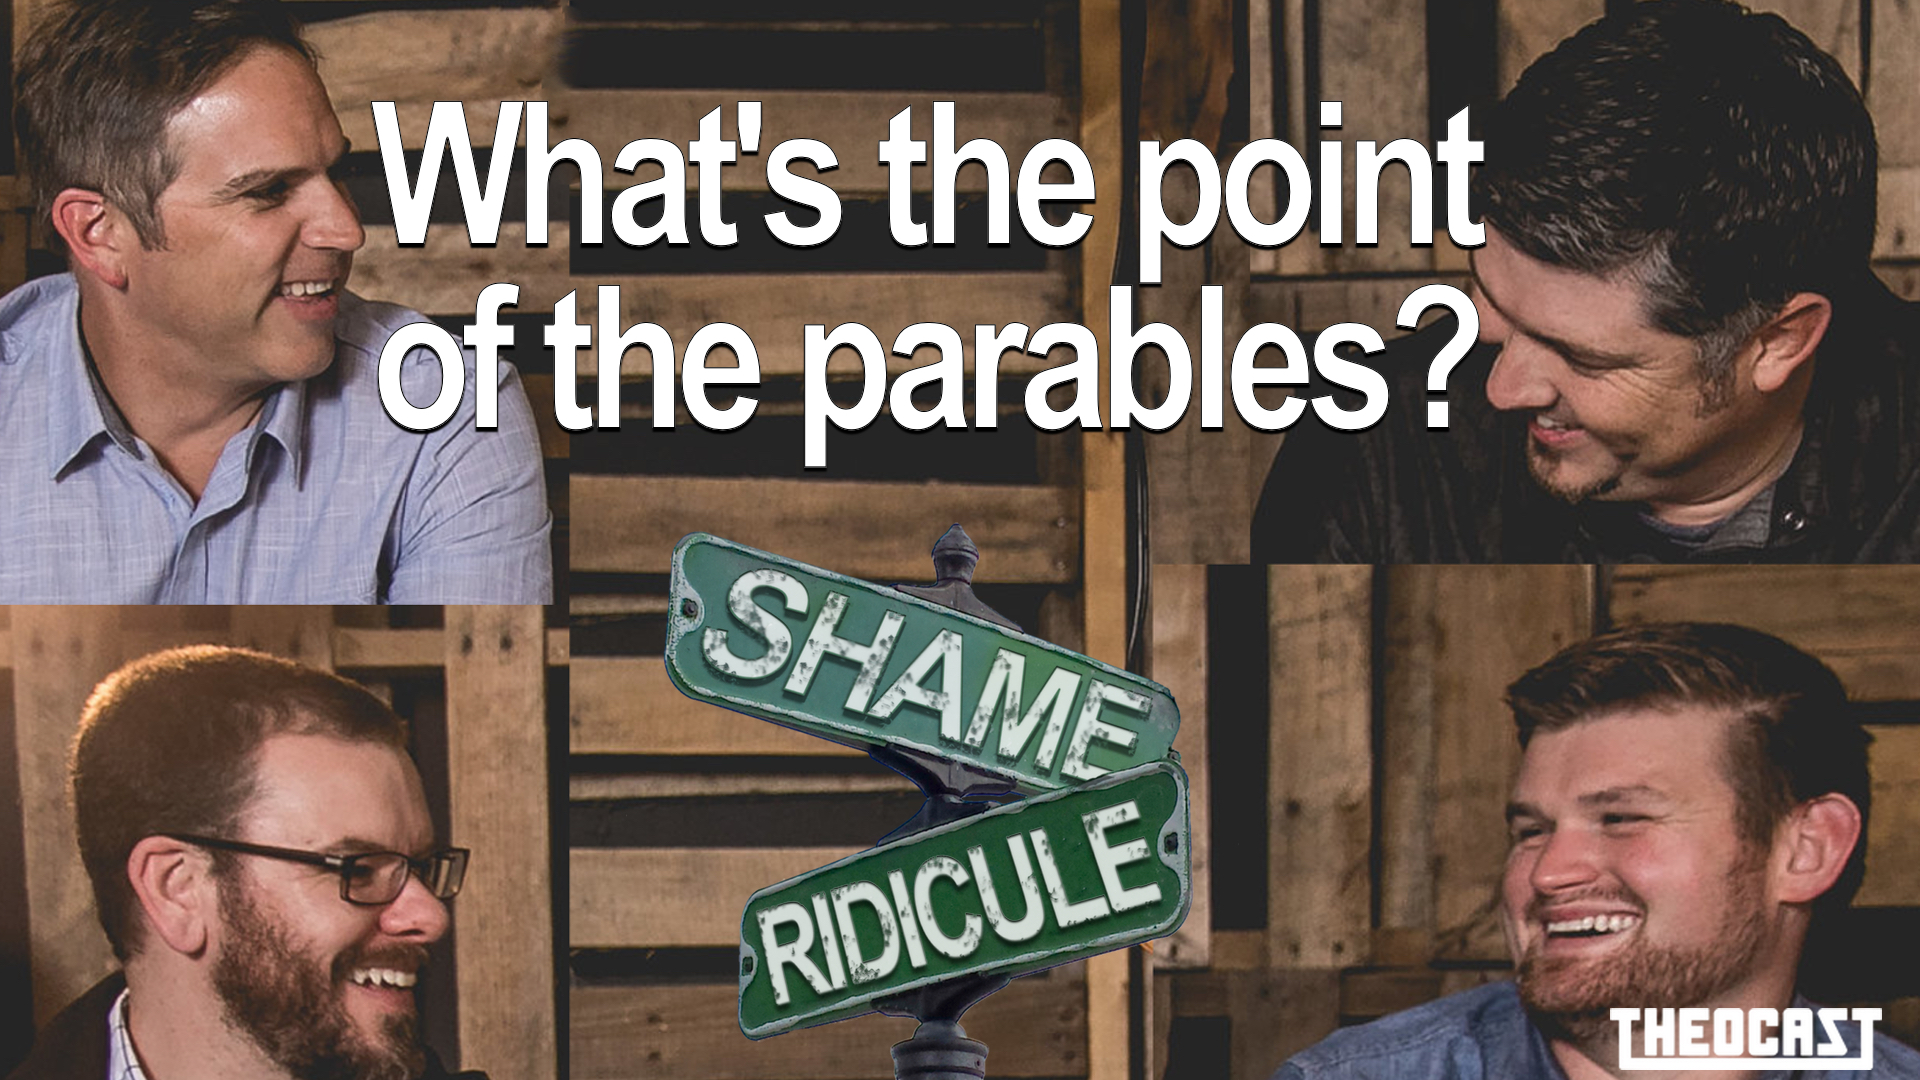 What's the Point of the Parables?